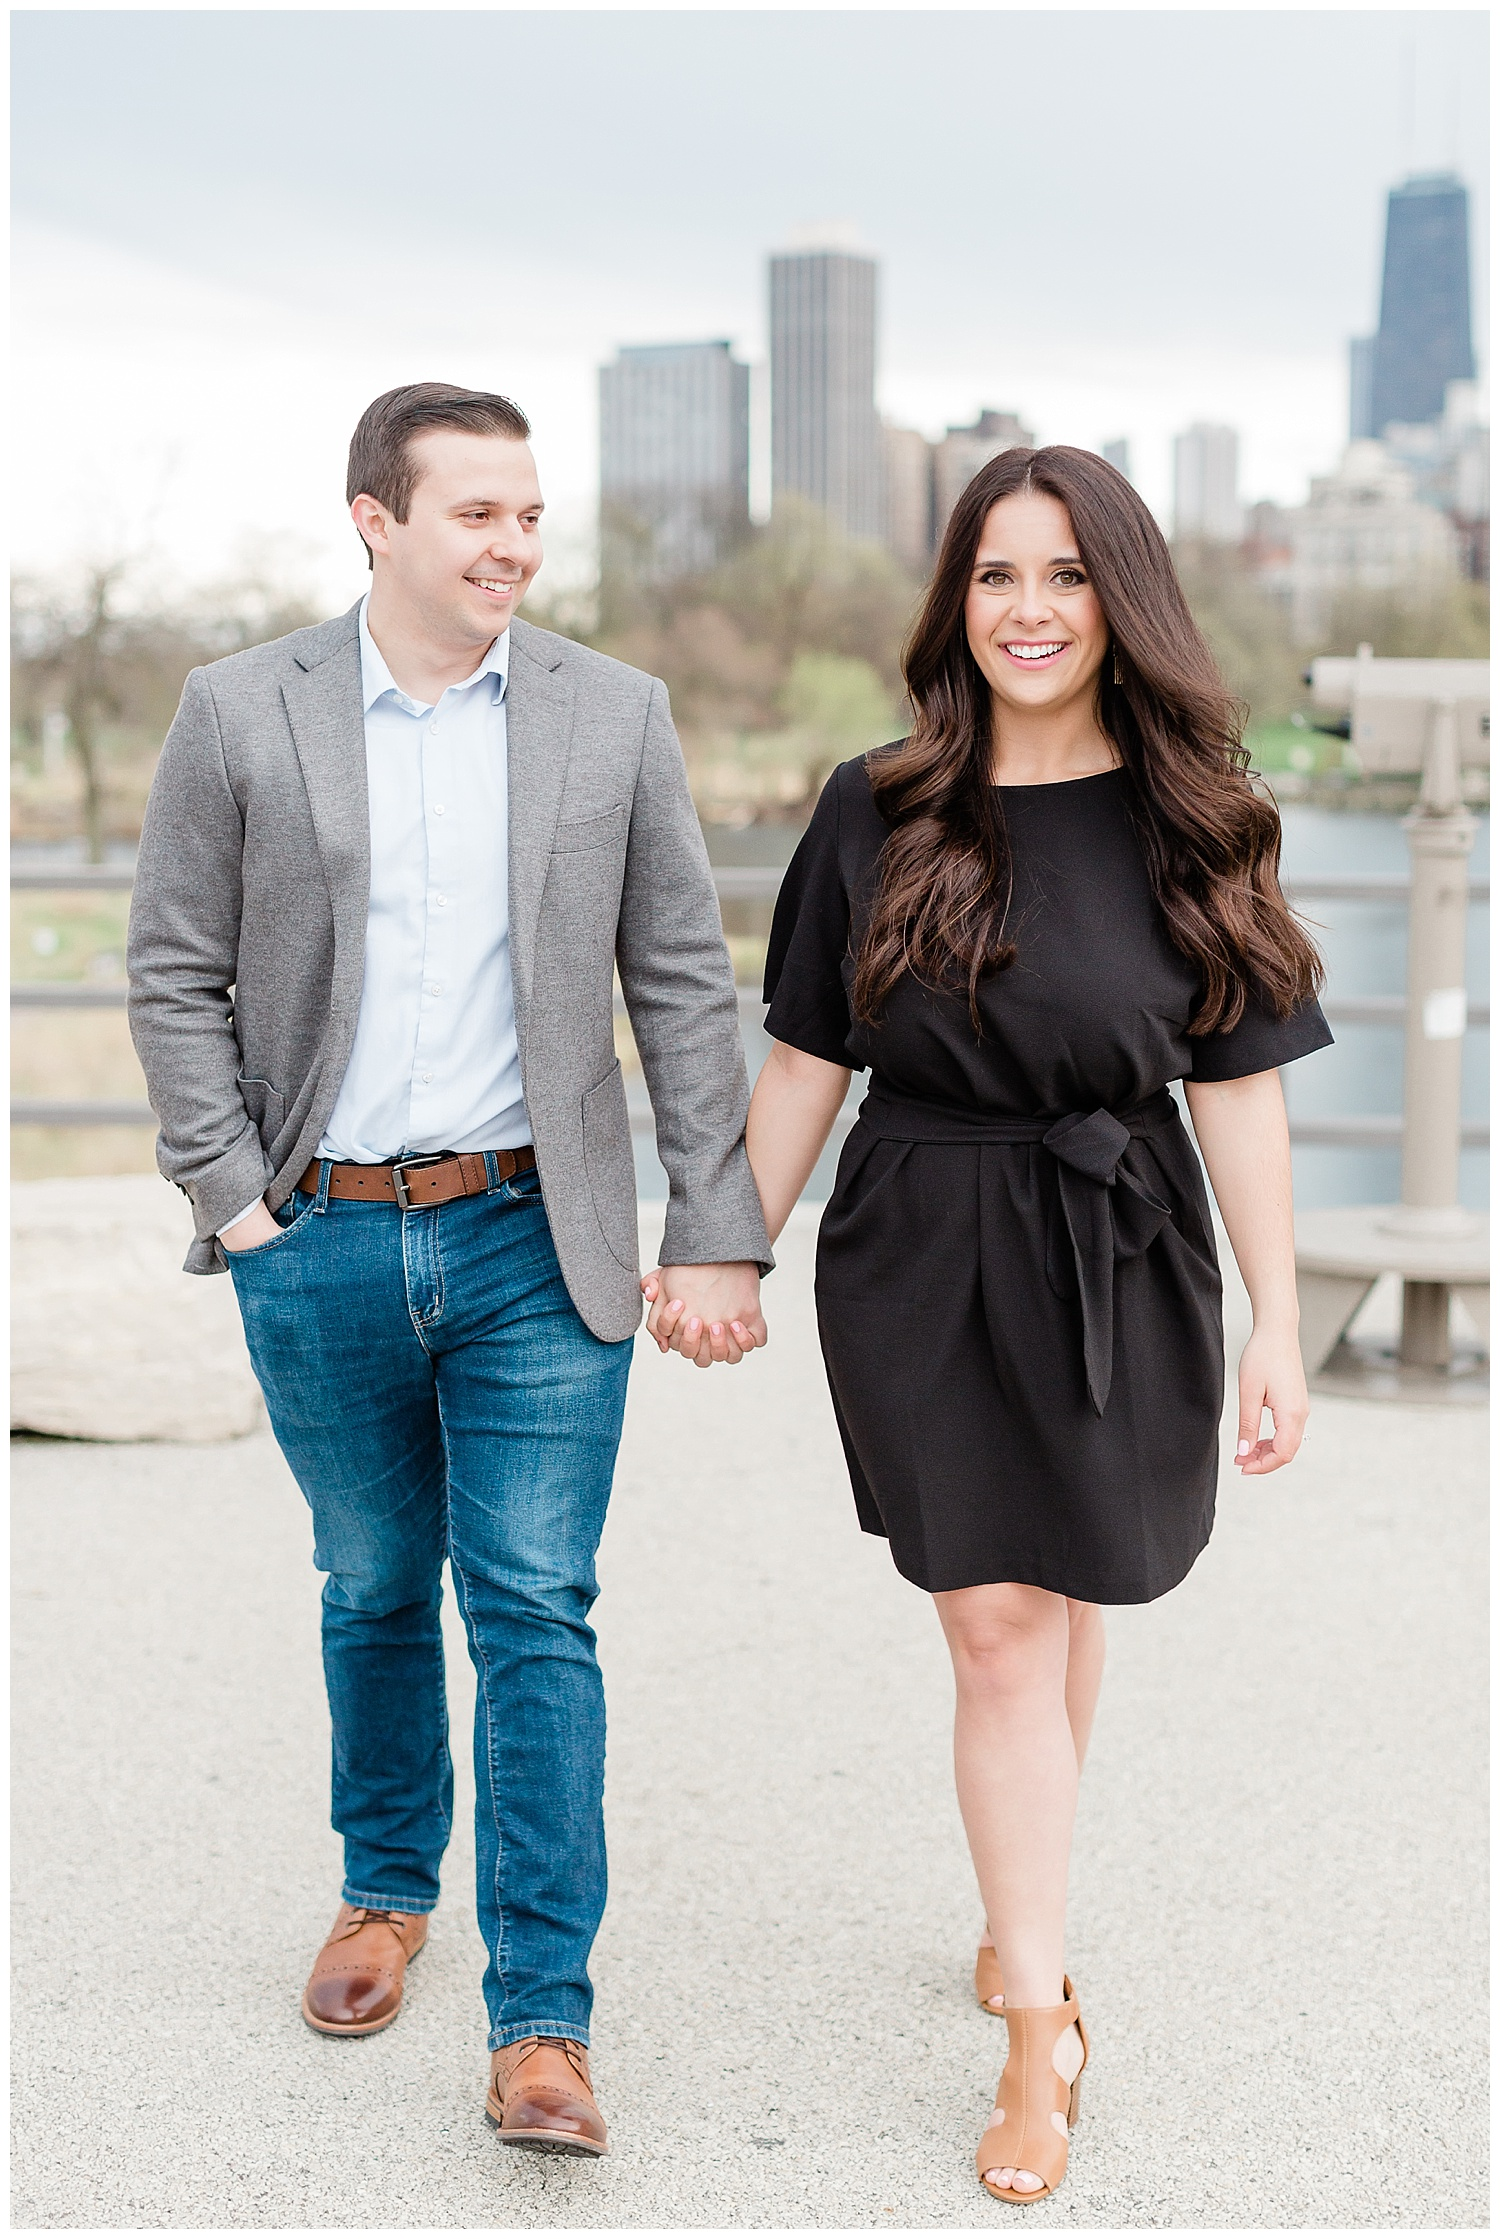 classic-downtown-chicago-engagement-session-kristen-cloyd-photography_0010.jpg